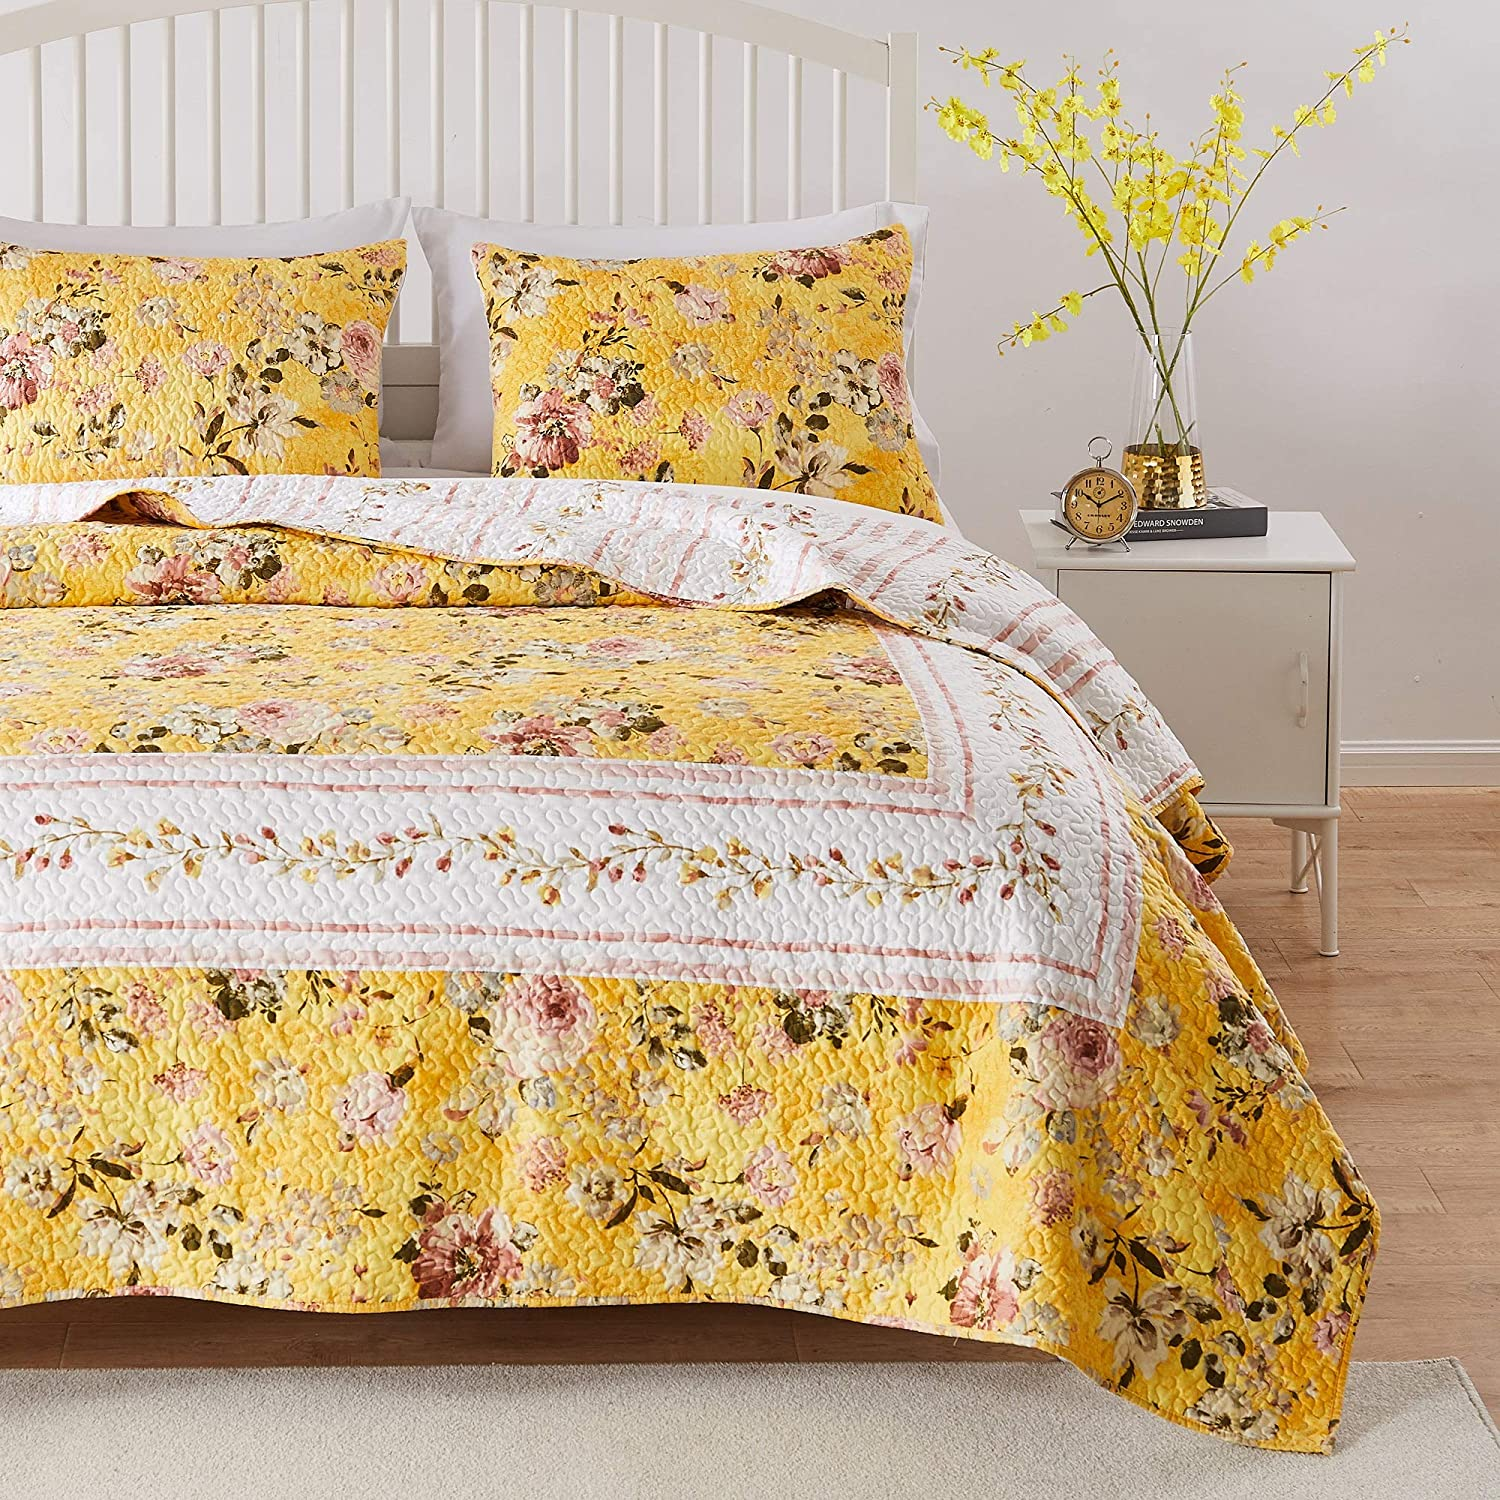 Greenland Home Barefoot Bungalow Finley Quilt Set, 3-Piece King/Cal King, Yellow